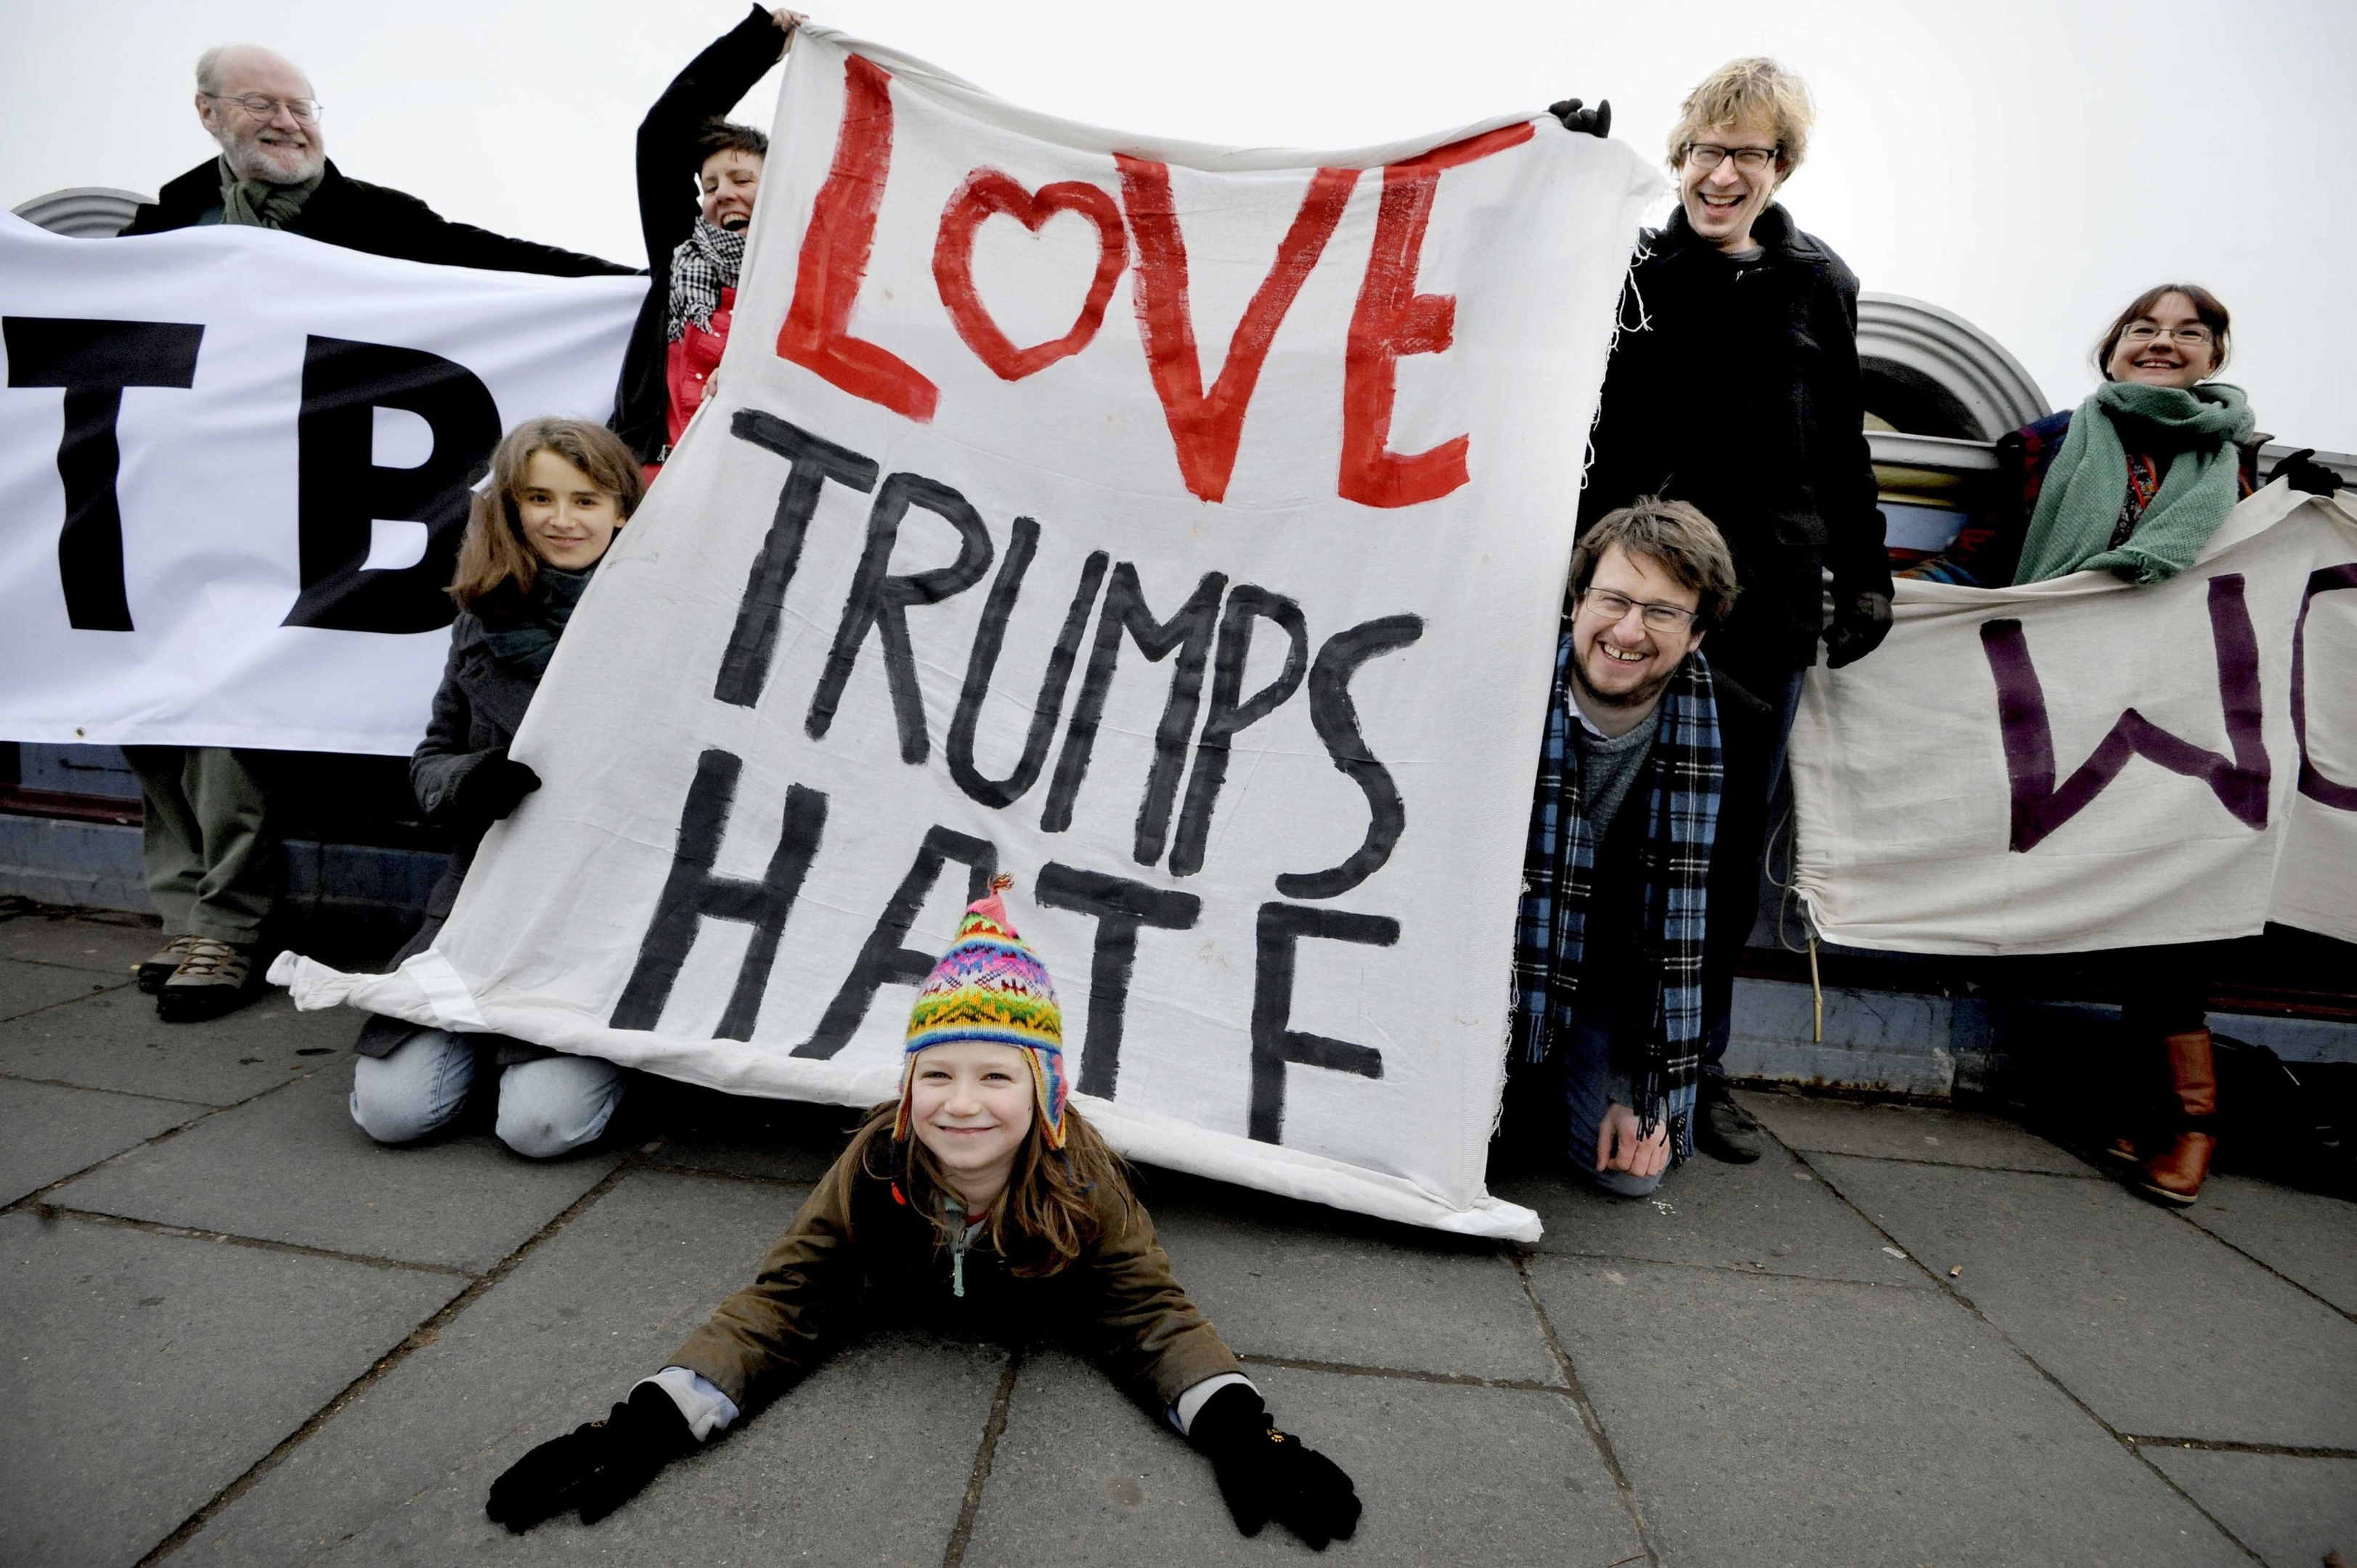 Banners on North Bridge in Edinburgh as part of the Bridges Not Walls protest against US President Donald Trump on the day of his inauguration.